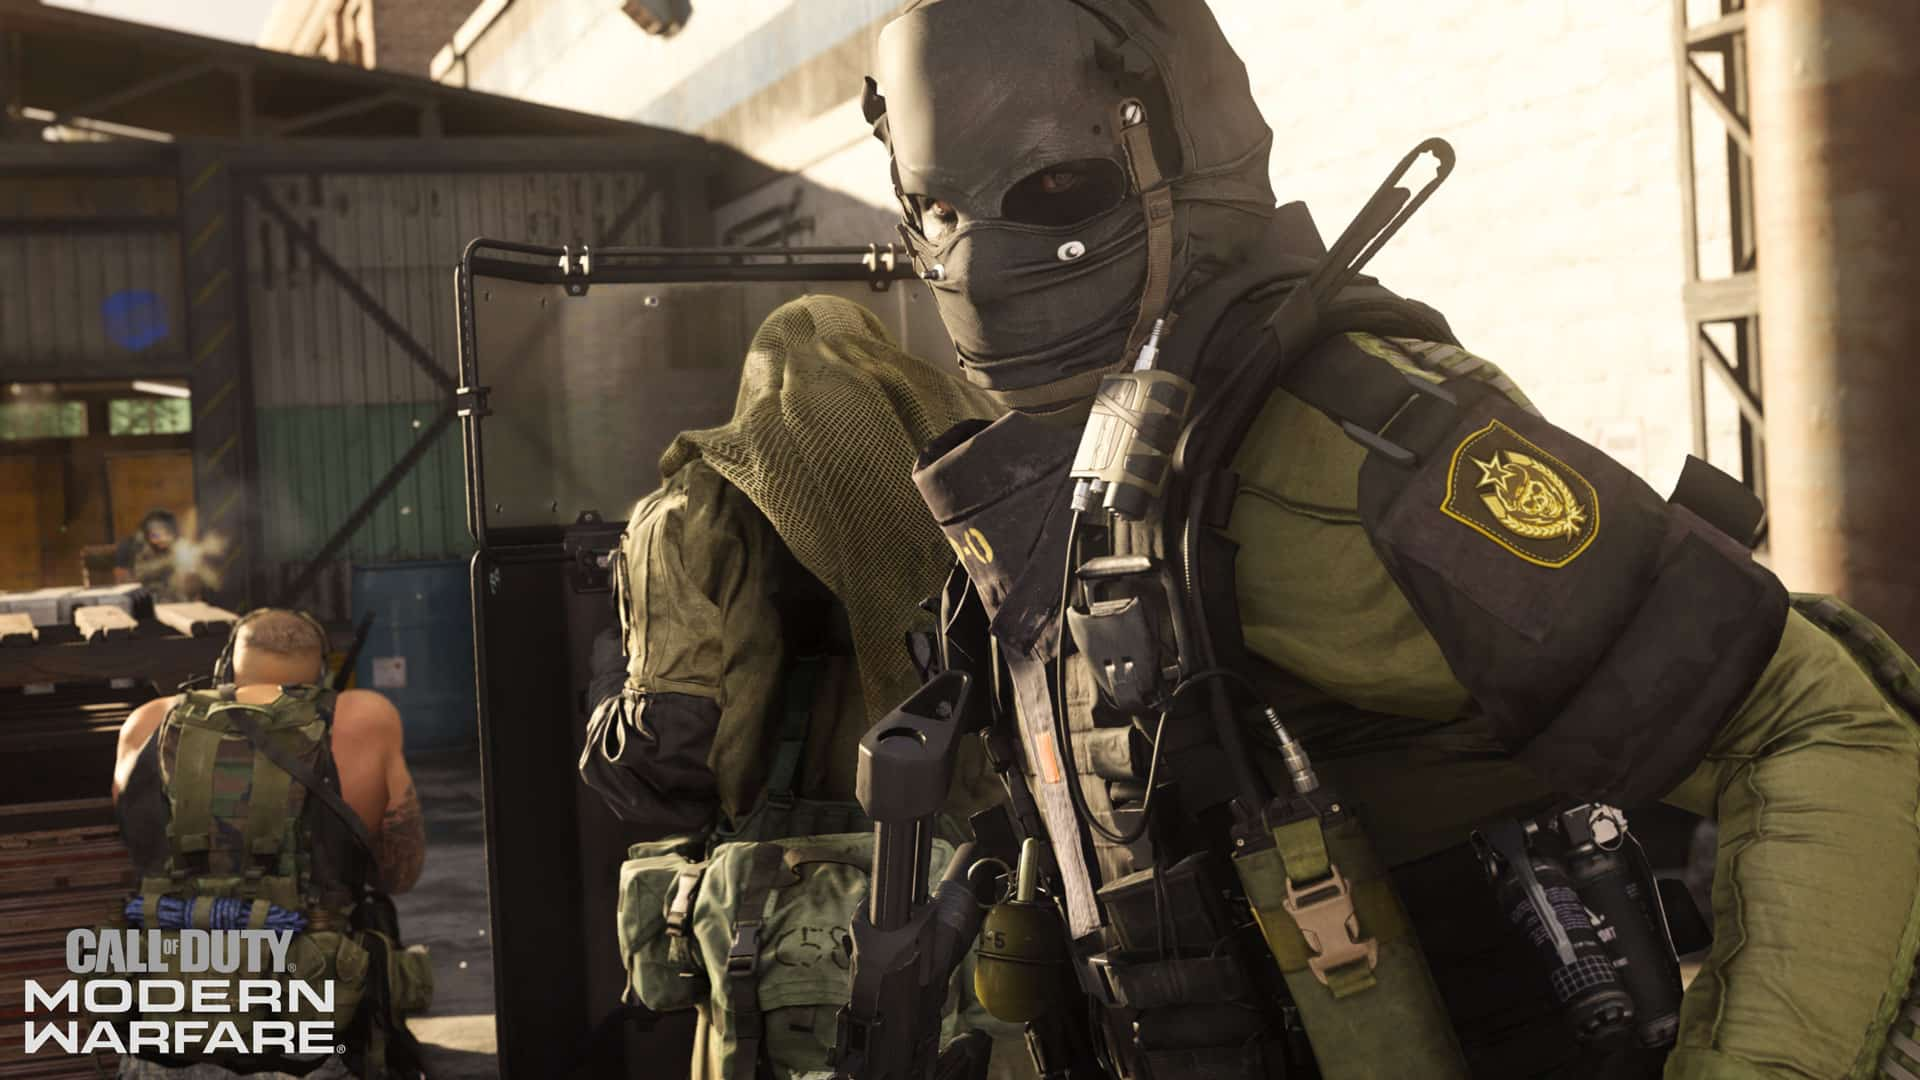 Modern Warfare Dev Says Upcoming Operators To Have More Military Themed Look Charlie Intel